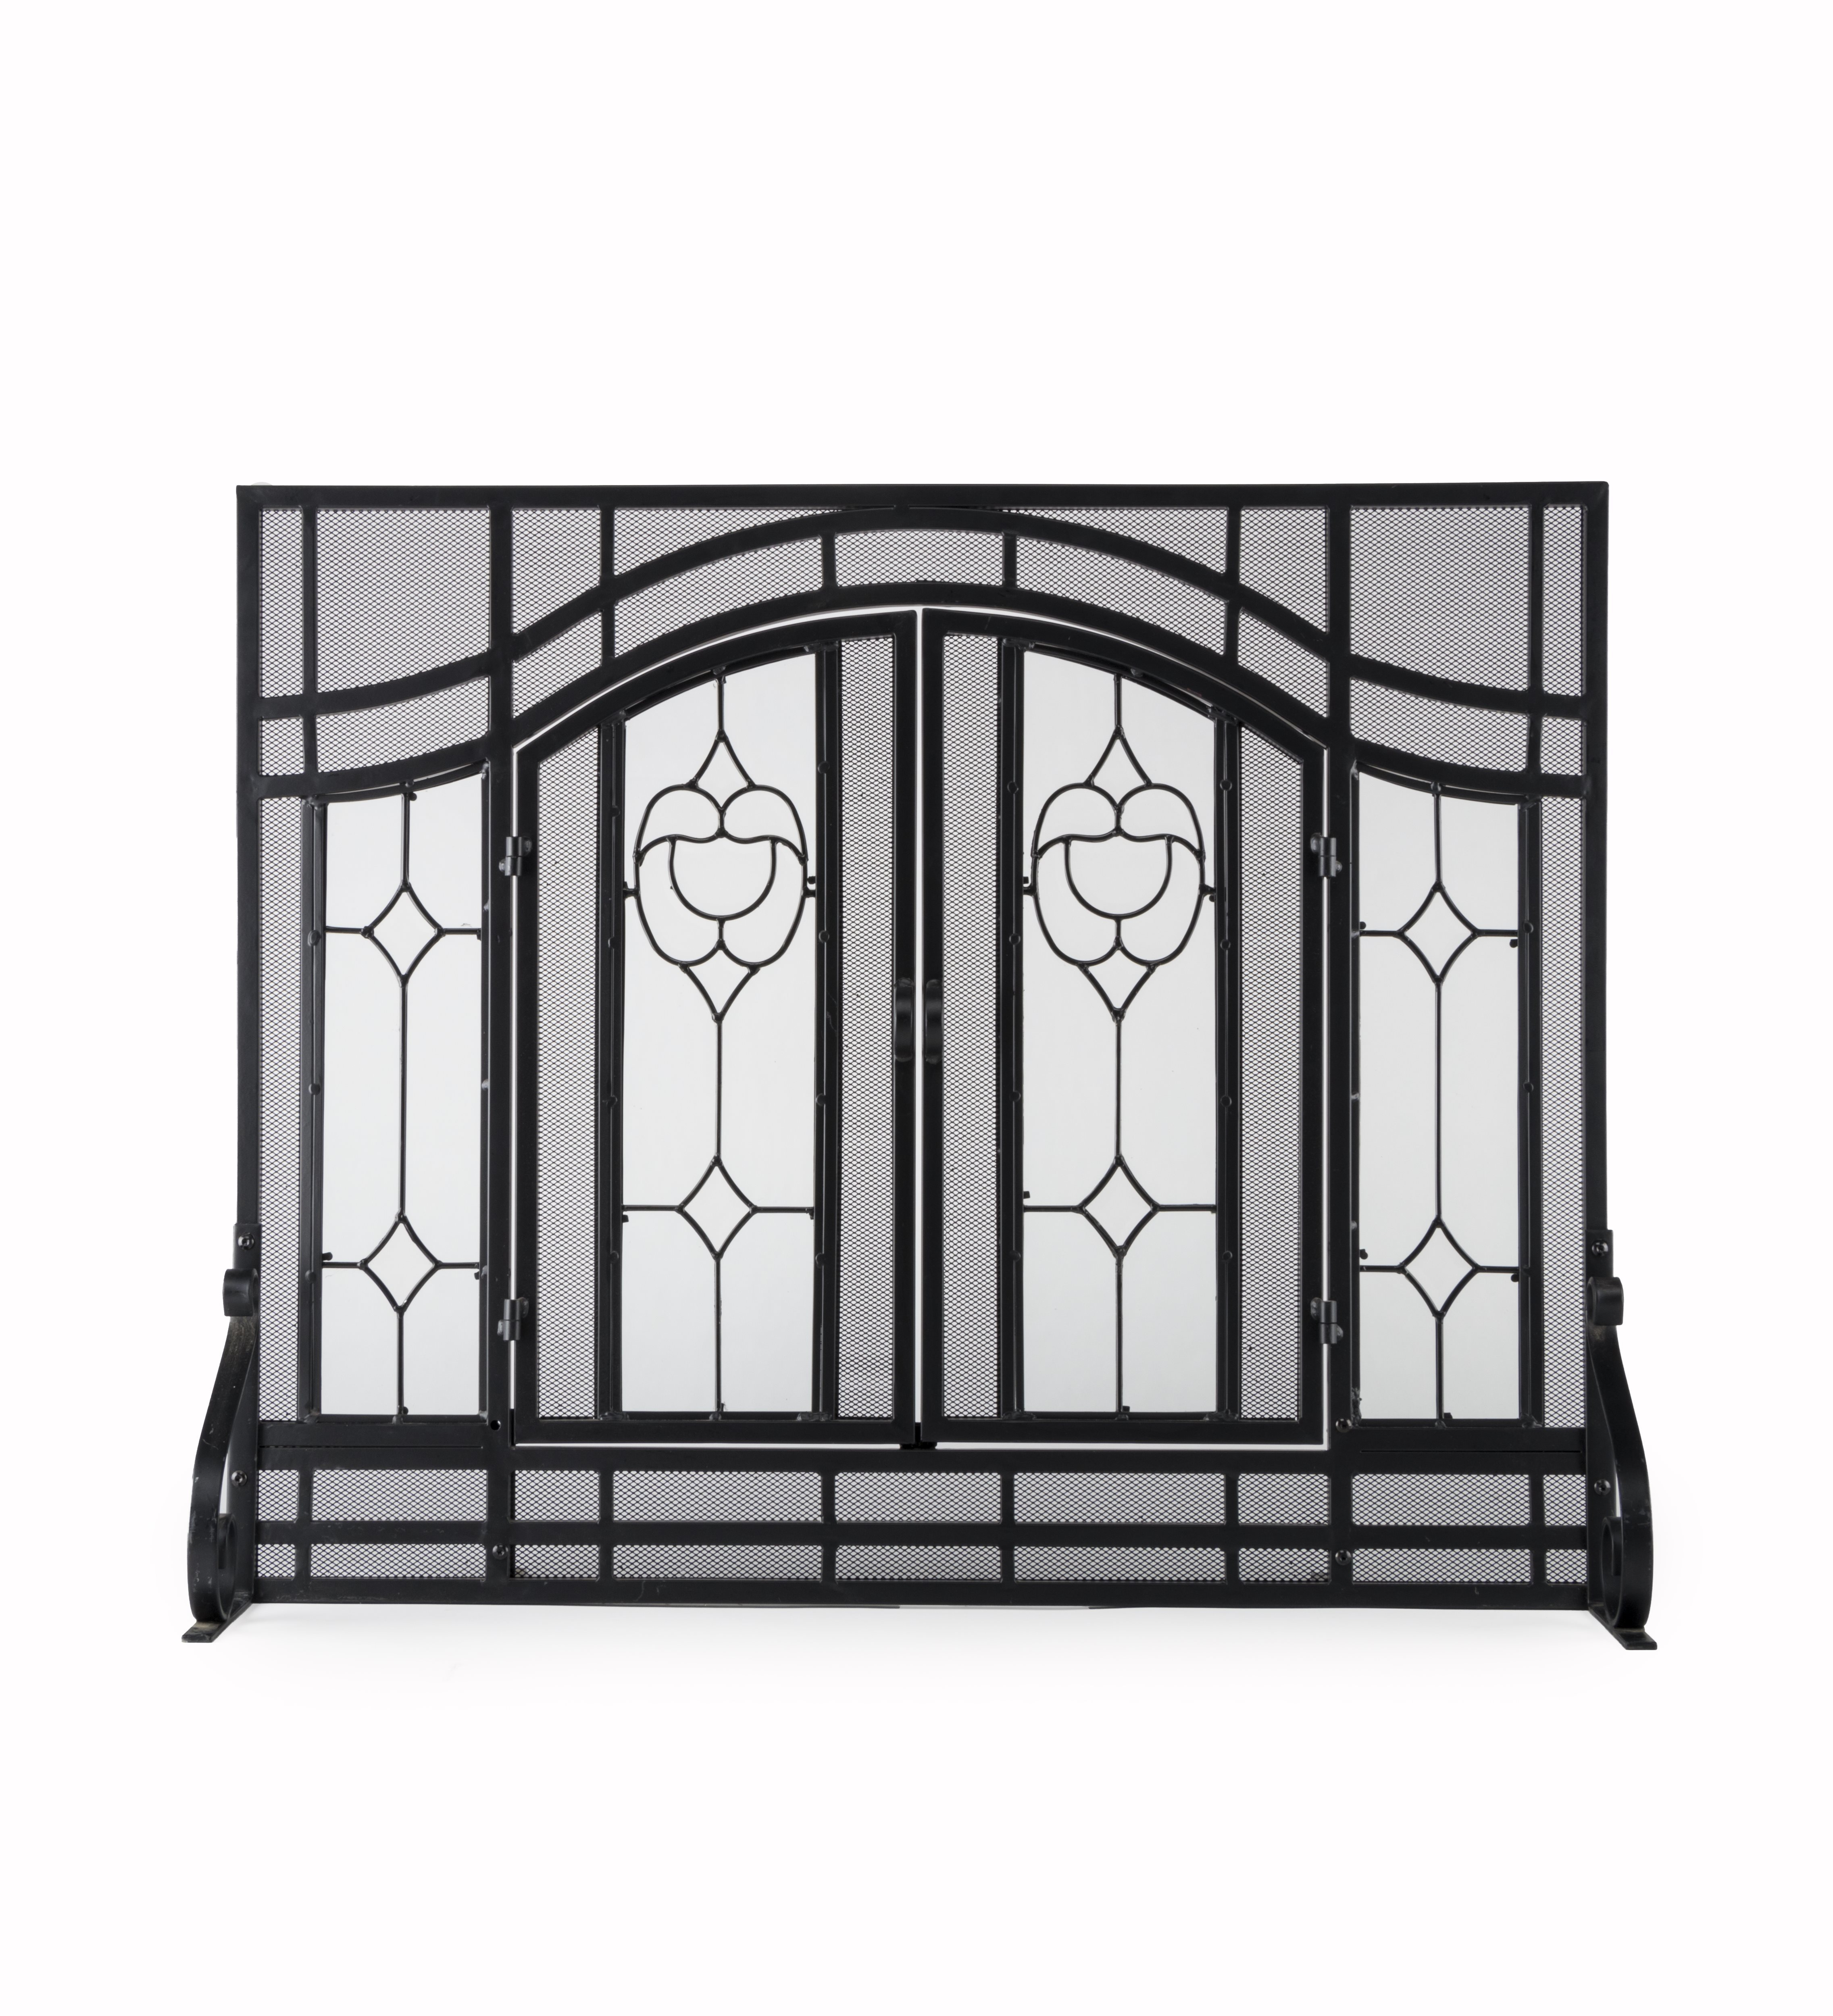 2-Door Floral Fireplace Screen w/ Beveled Glass Panels in Black